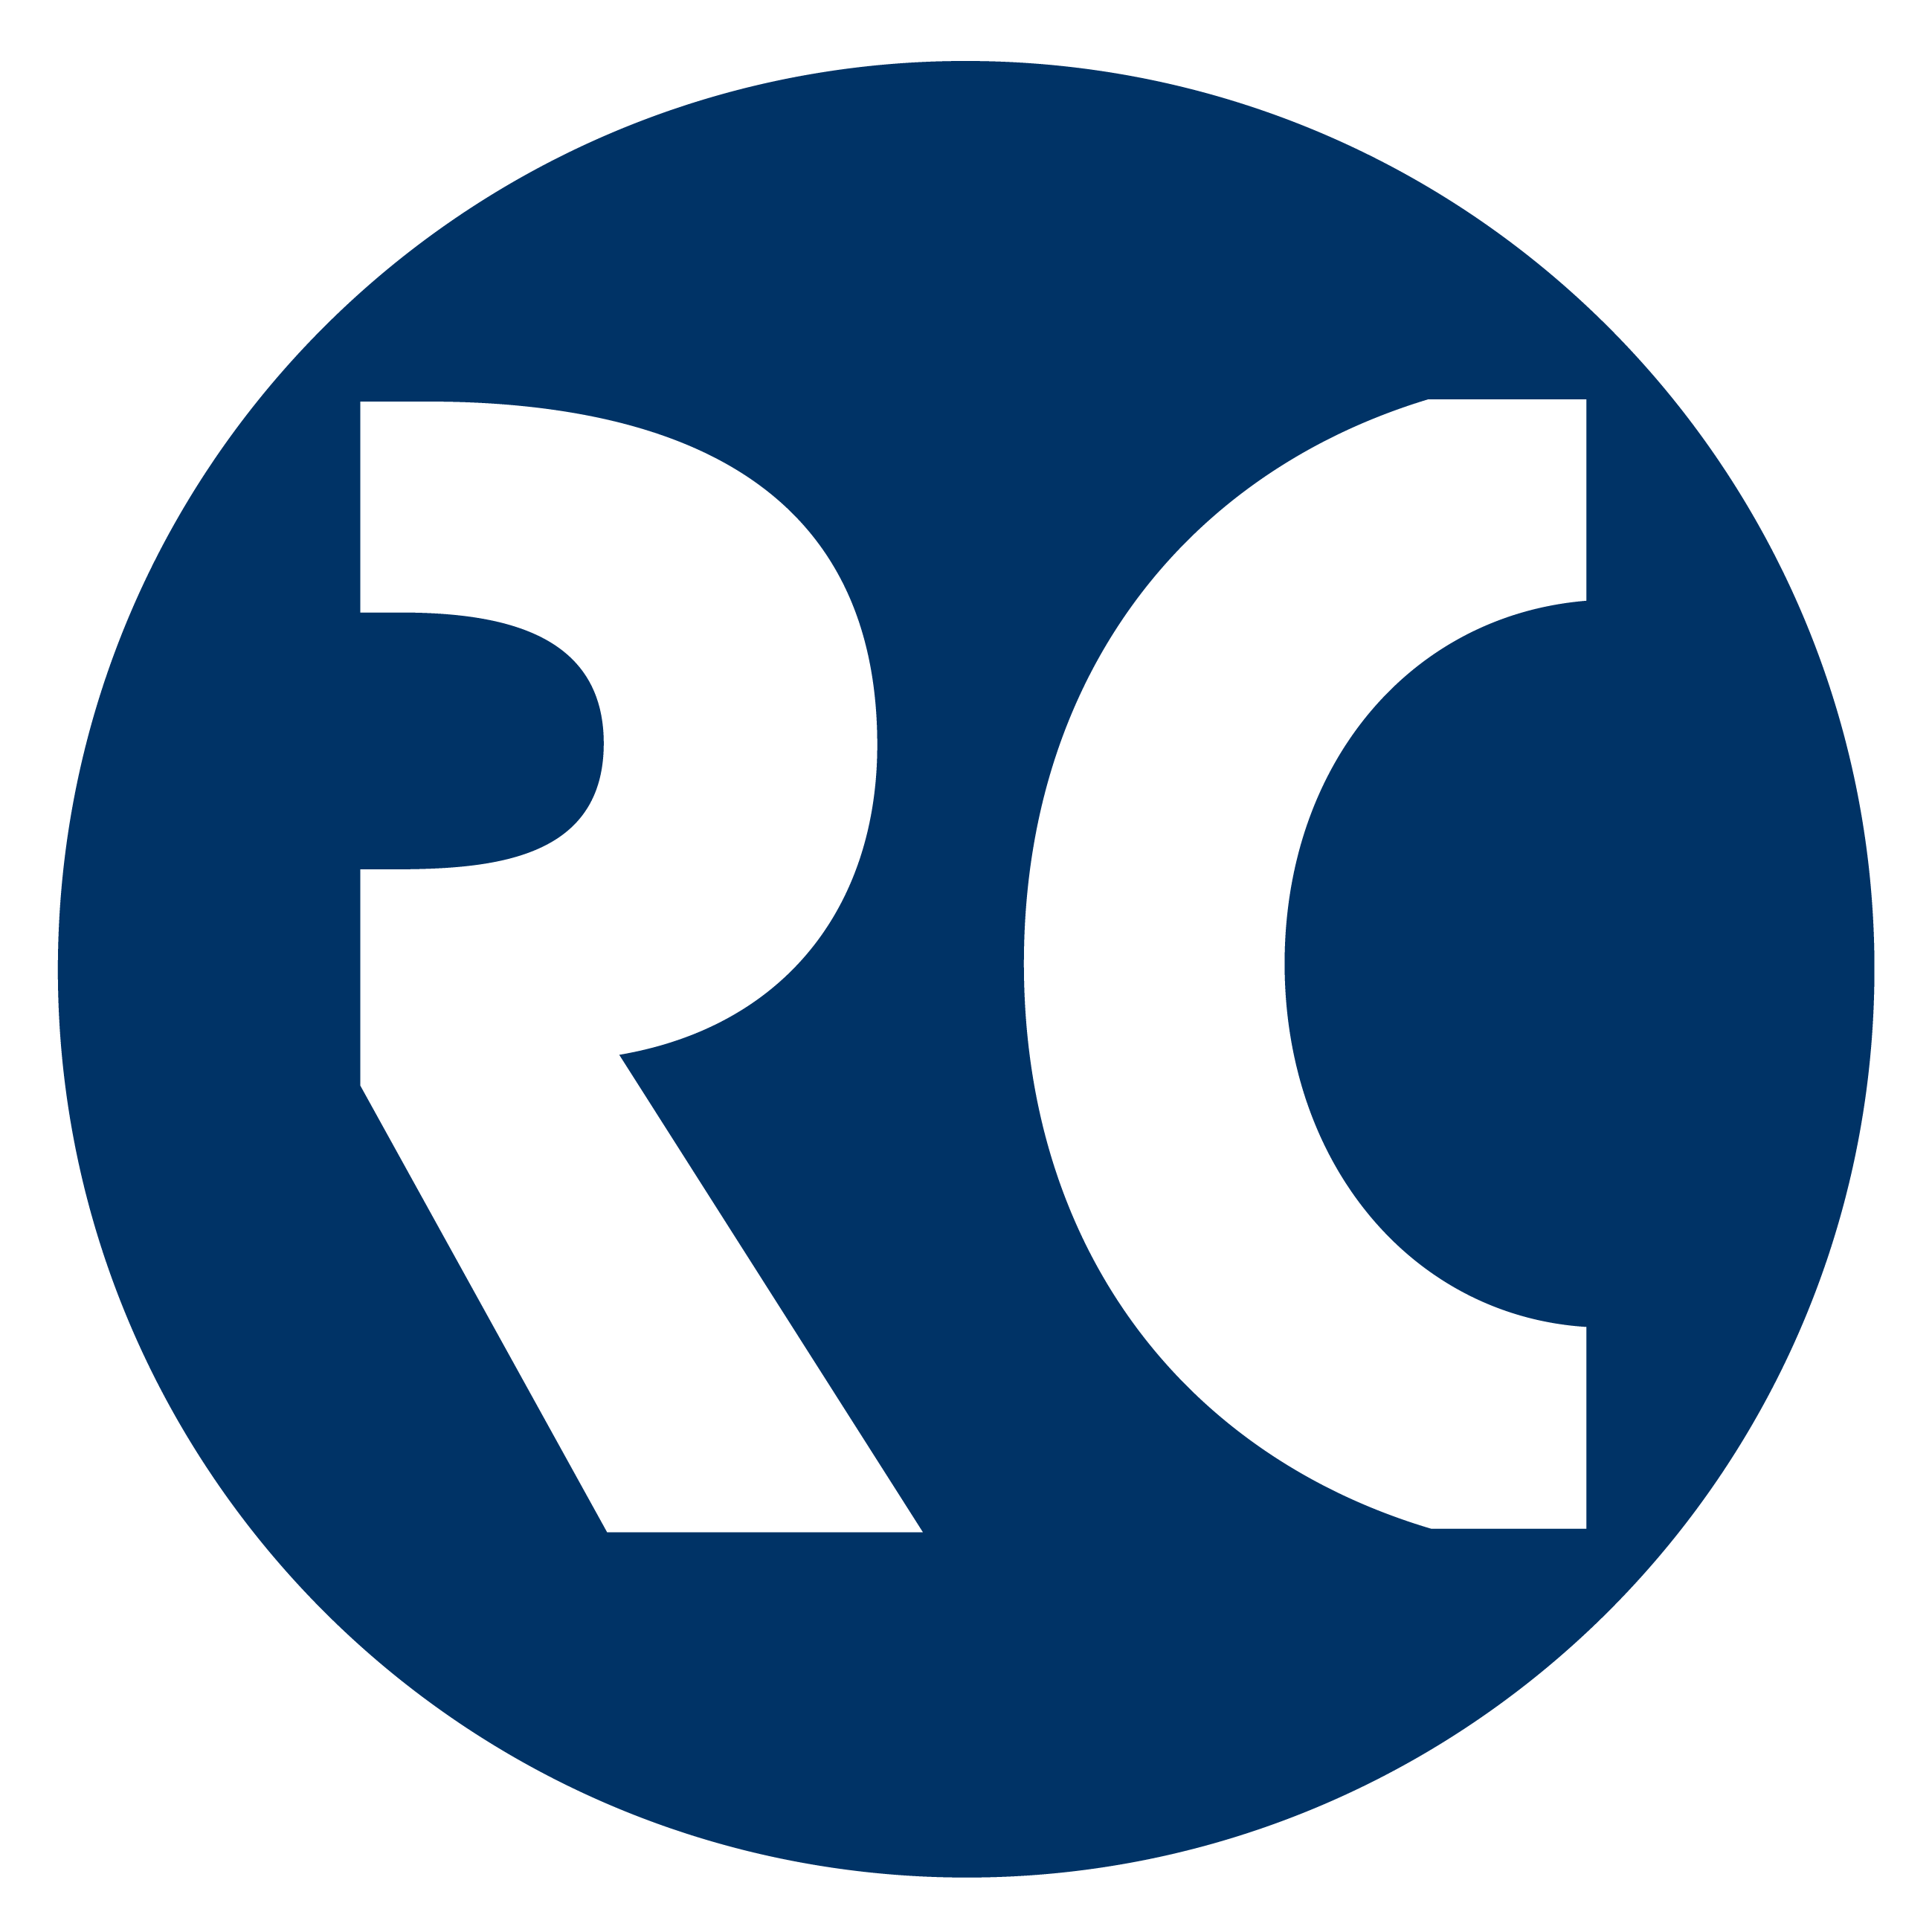 Rottenberger Consulting GmbH